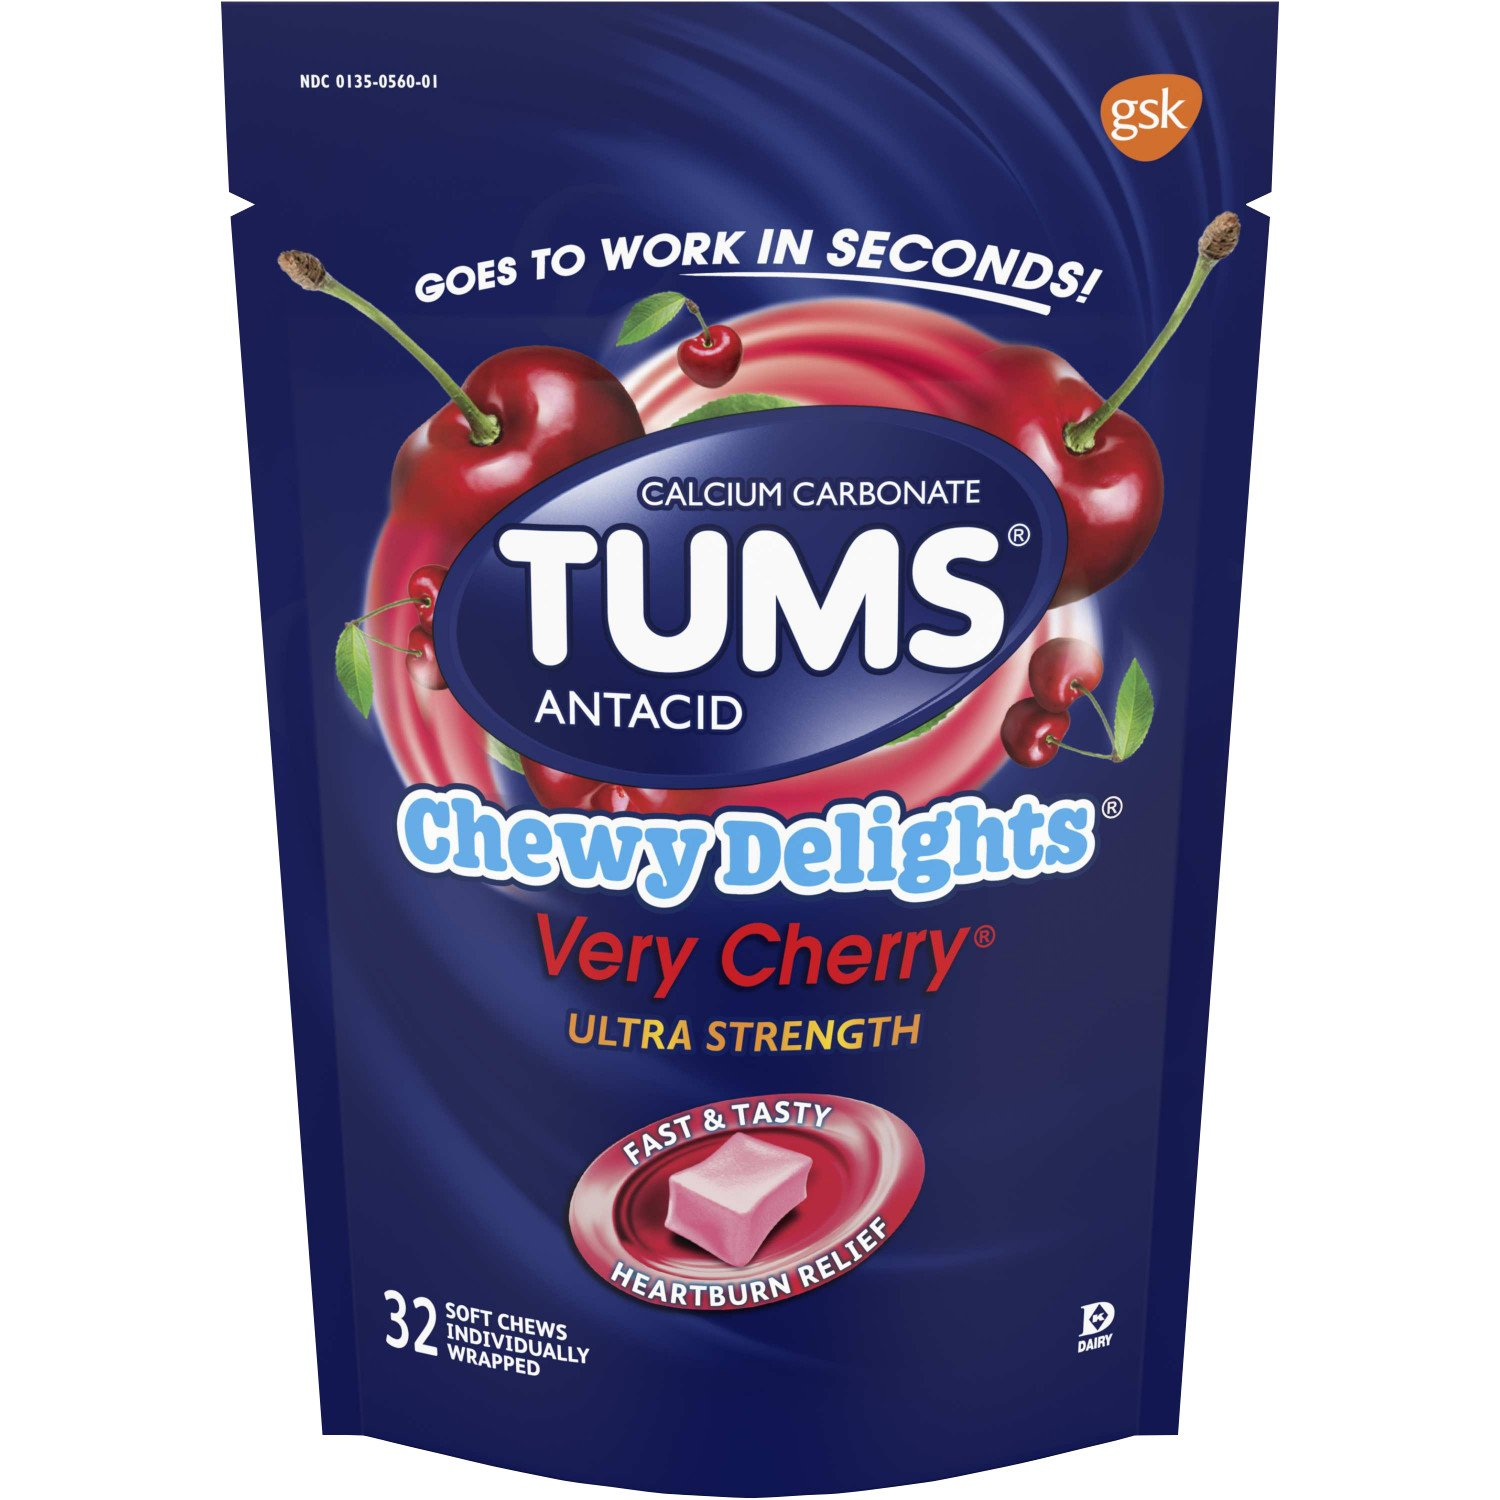 TUMS Chewy Delights Ultra Strength Antacid Soft Chews - Verry Cherry - 32 ct